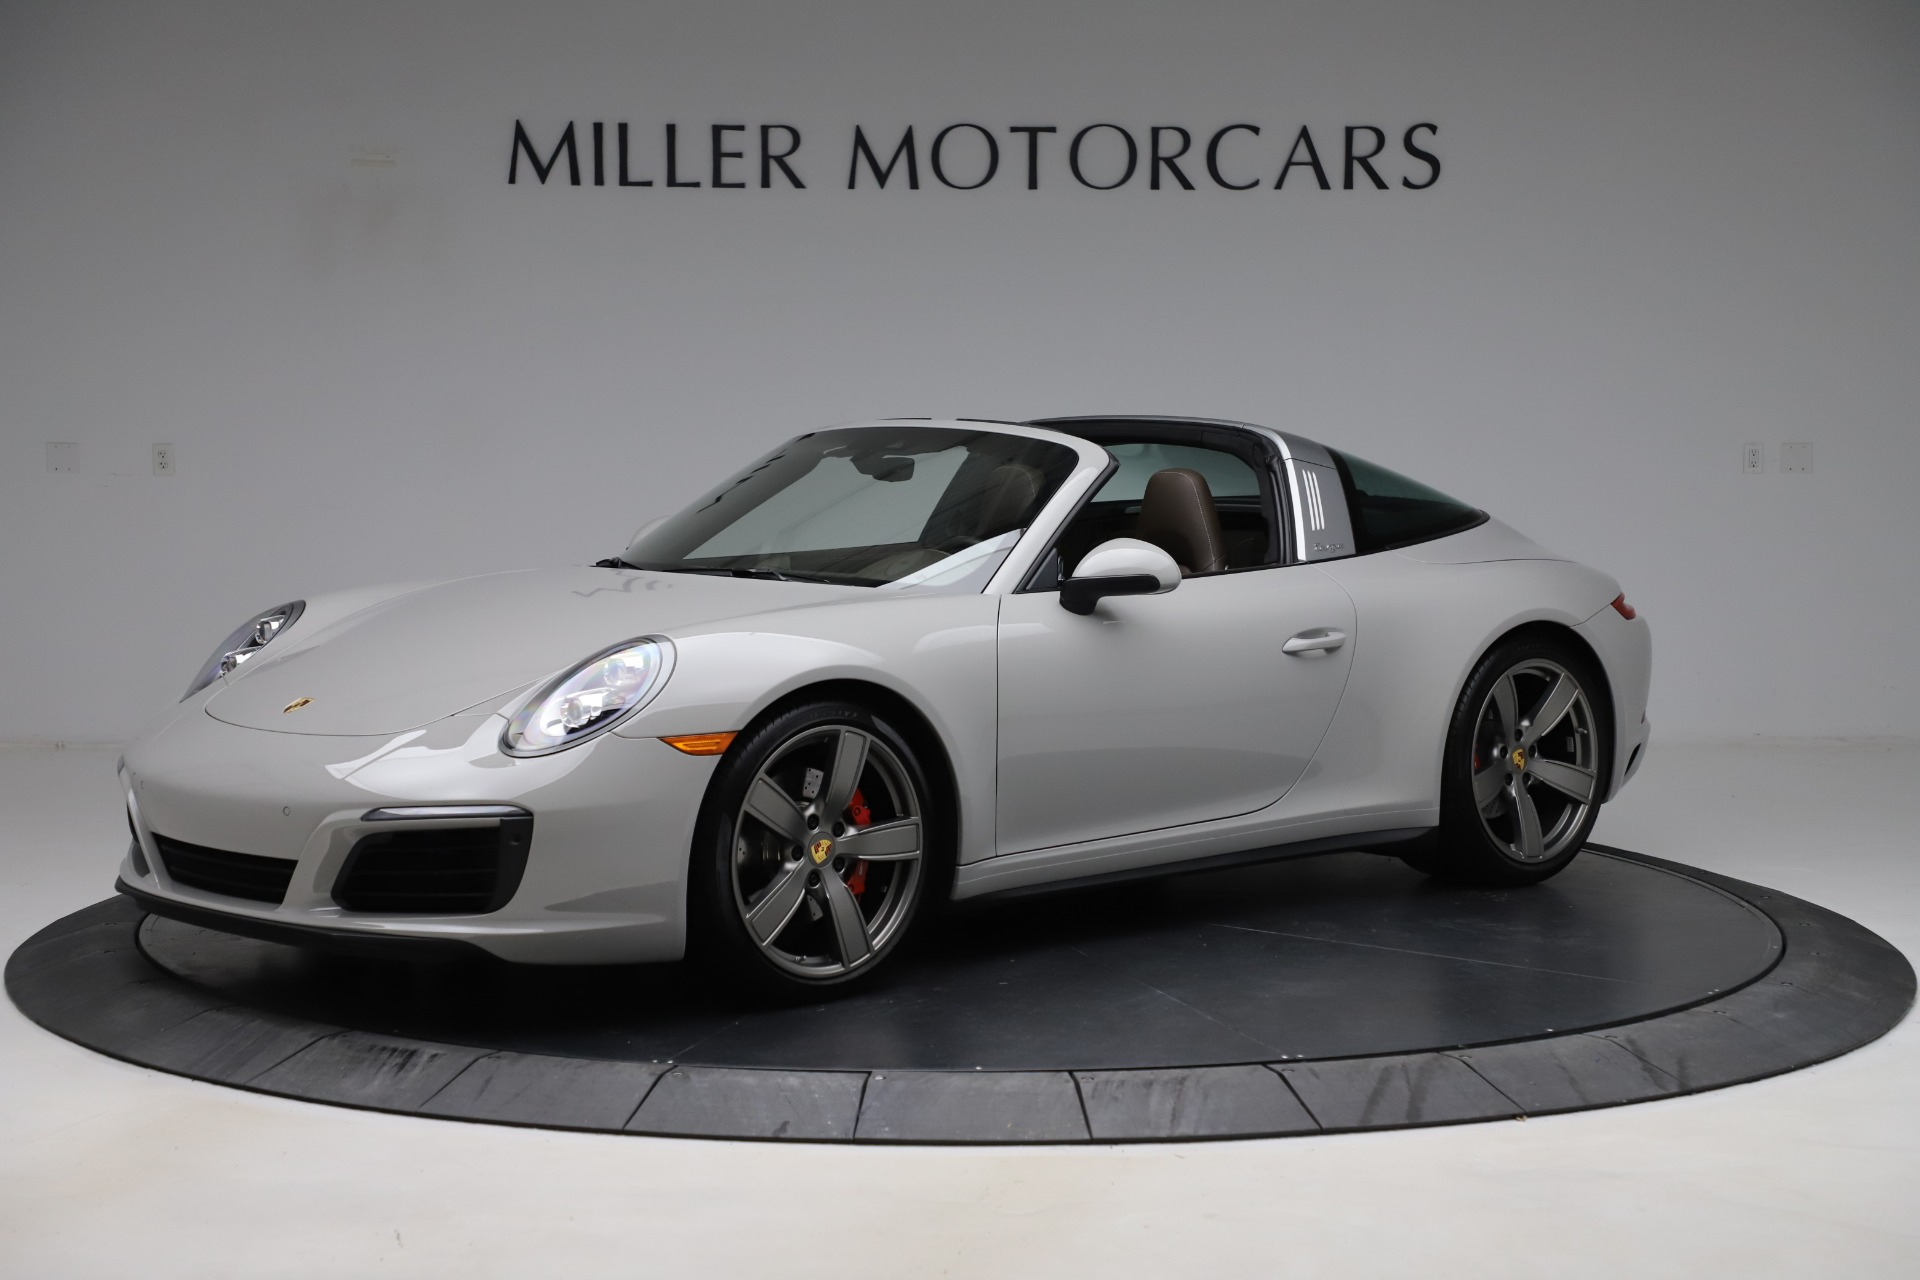 Used 2018 Porsche 911 Targa 4S for sale $134,900 at Bentley Greenwich in Greenwich CT 06830 1